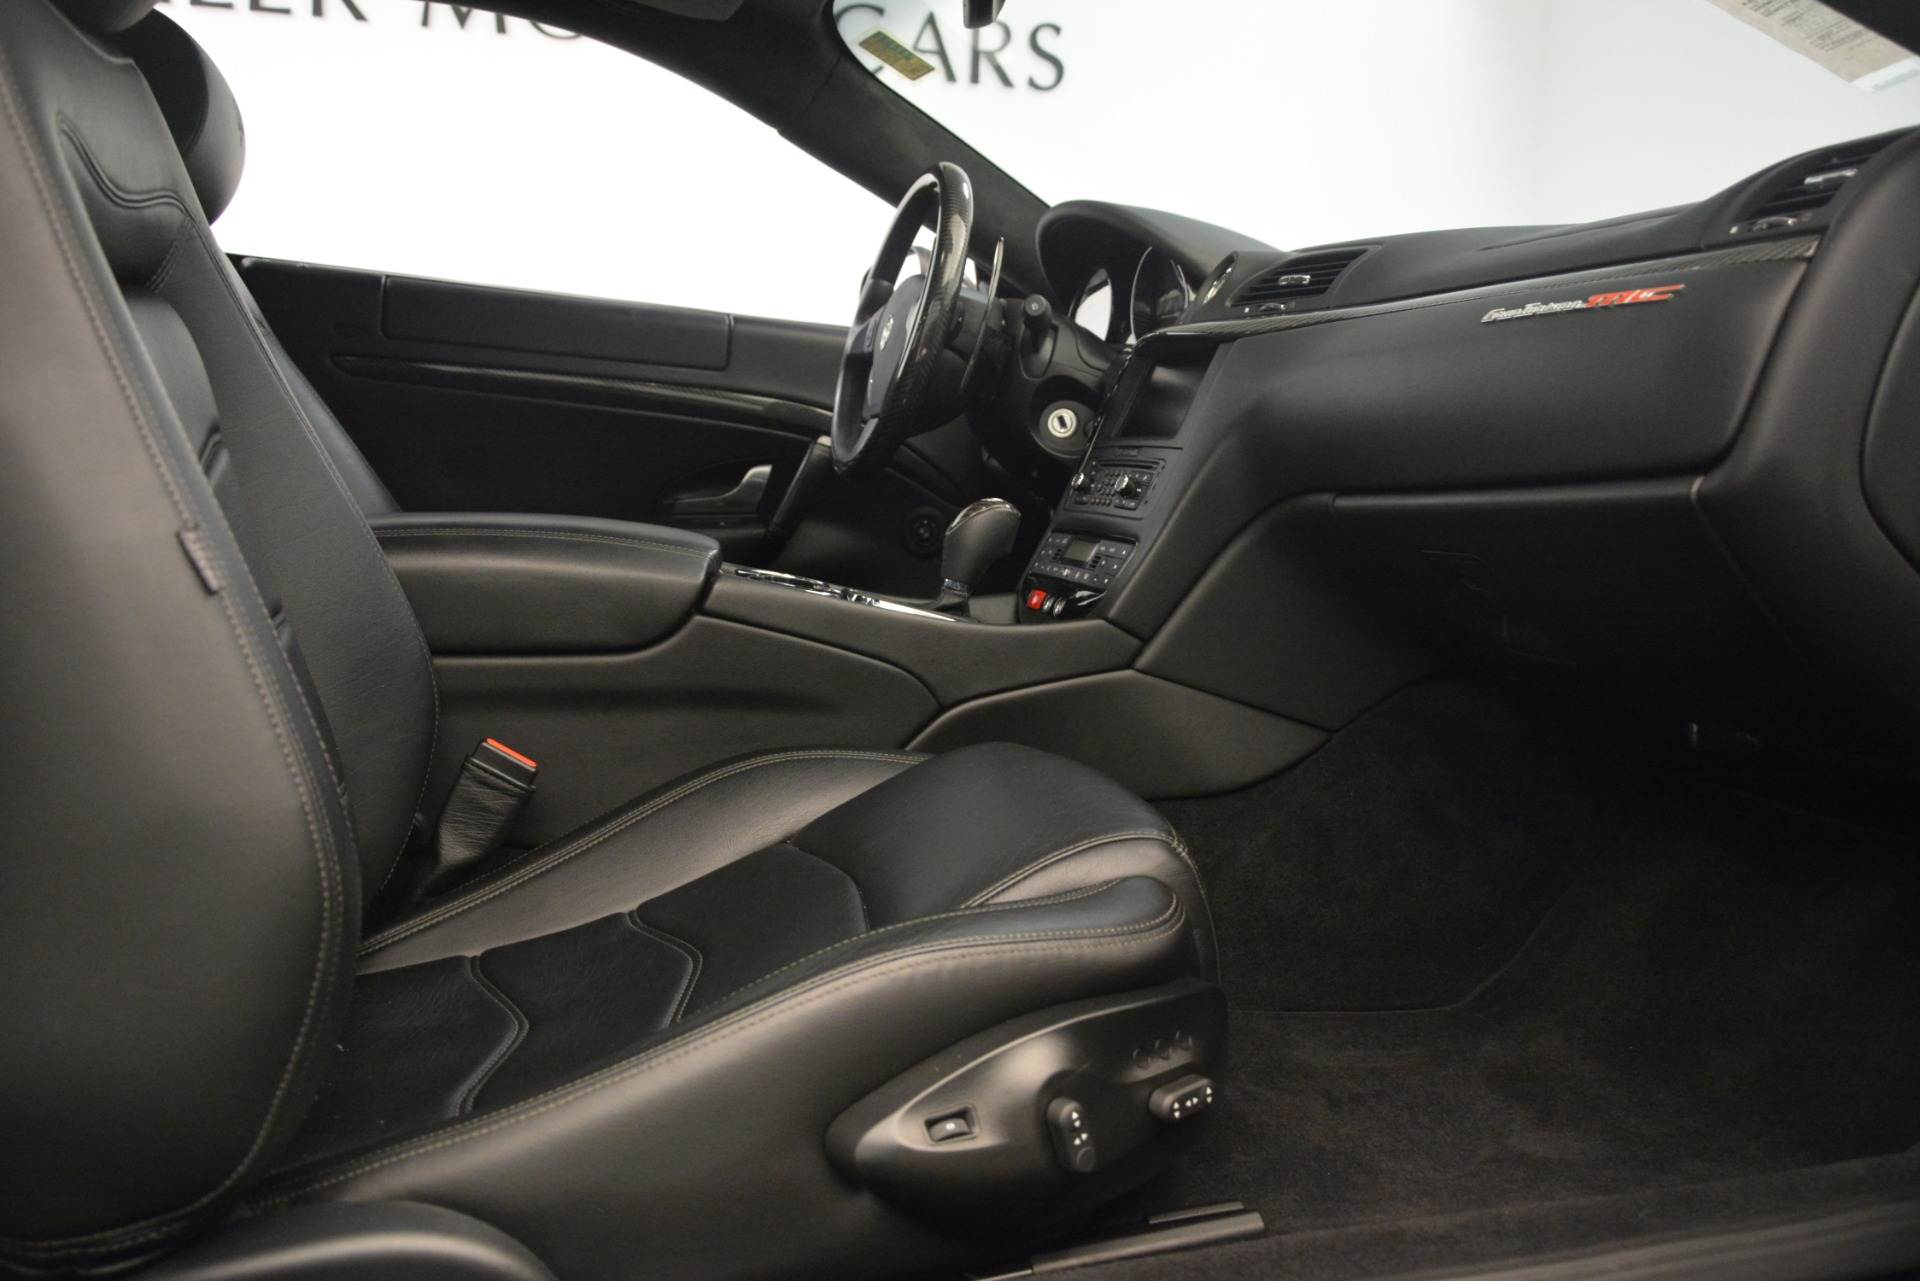 Used 2012 Maserati GranTurismo MC For Sale In Greenwich, CT 1284_p21